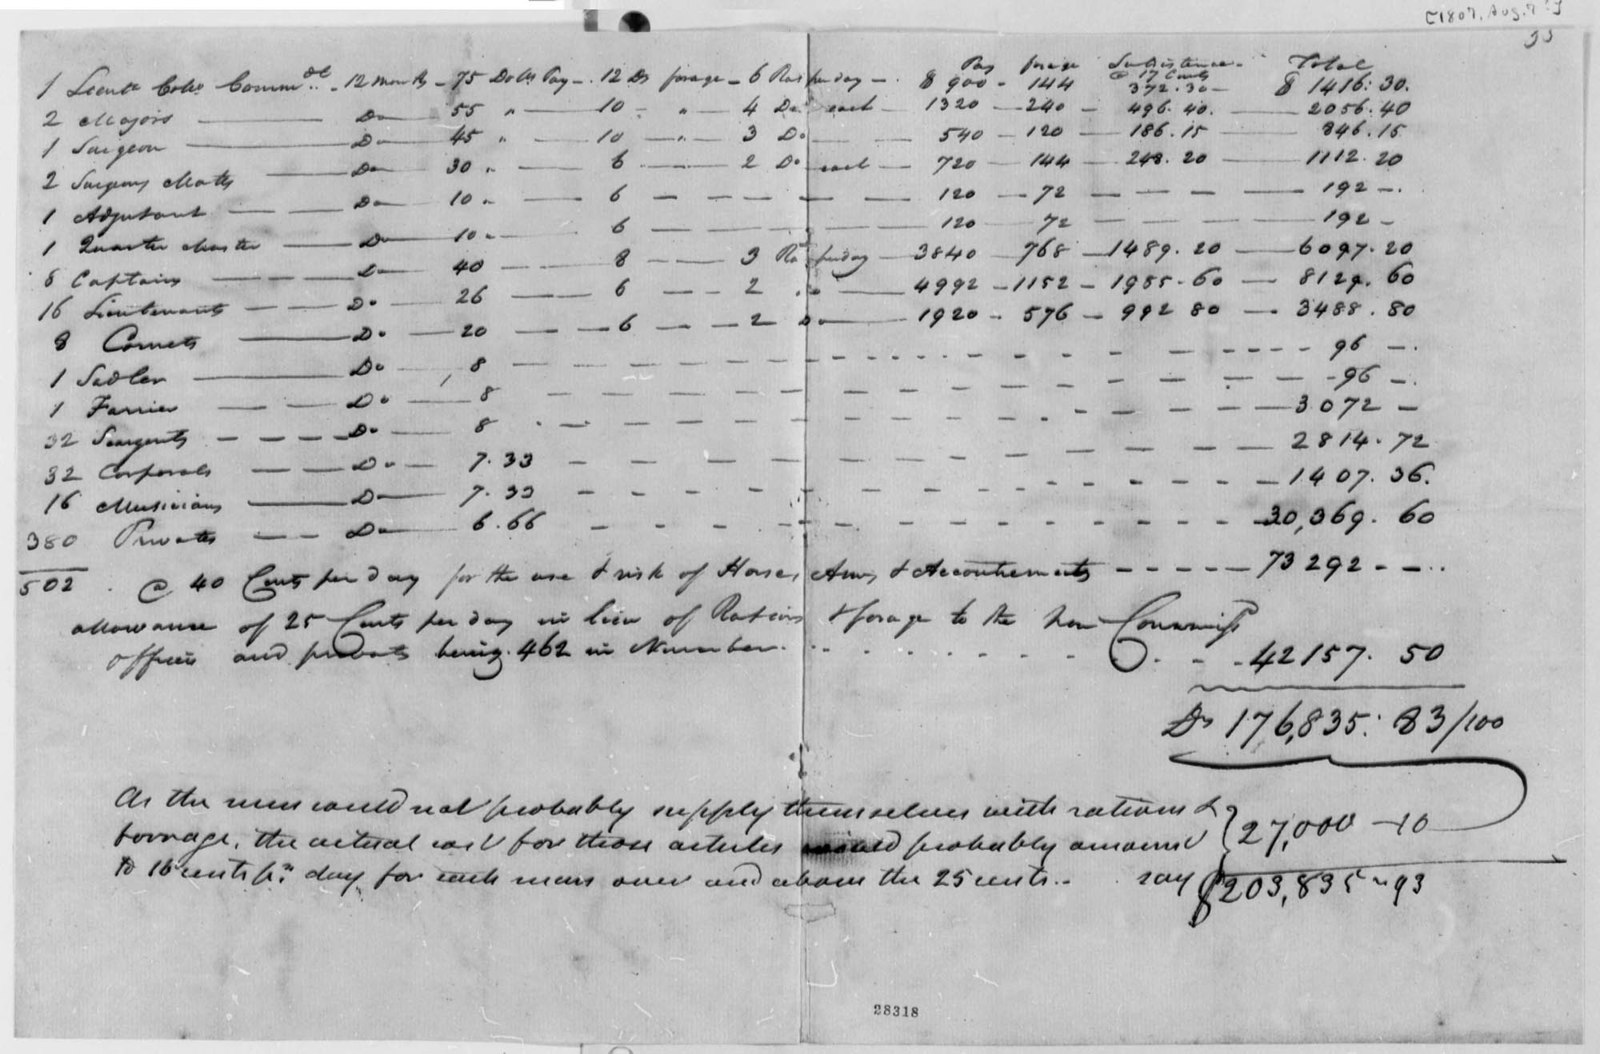 Henry Dearborn, August 7, 1807, Proposals for Army Recruitment